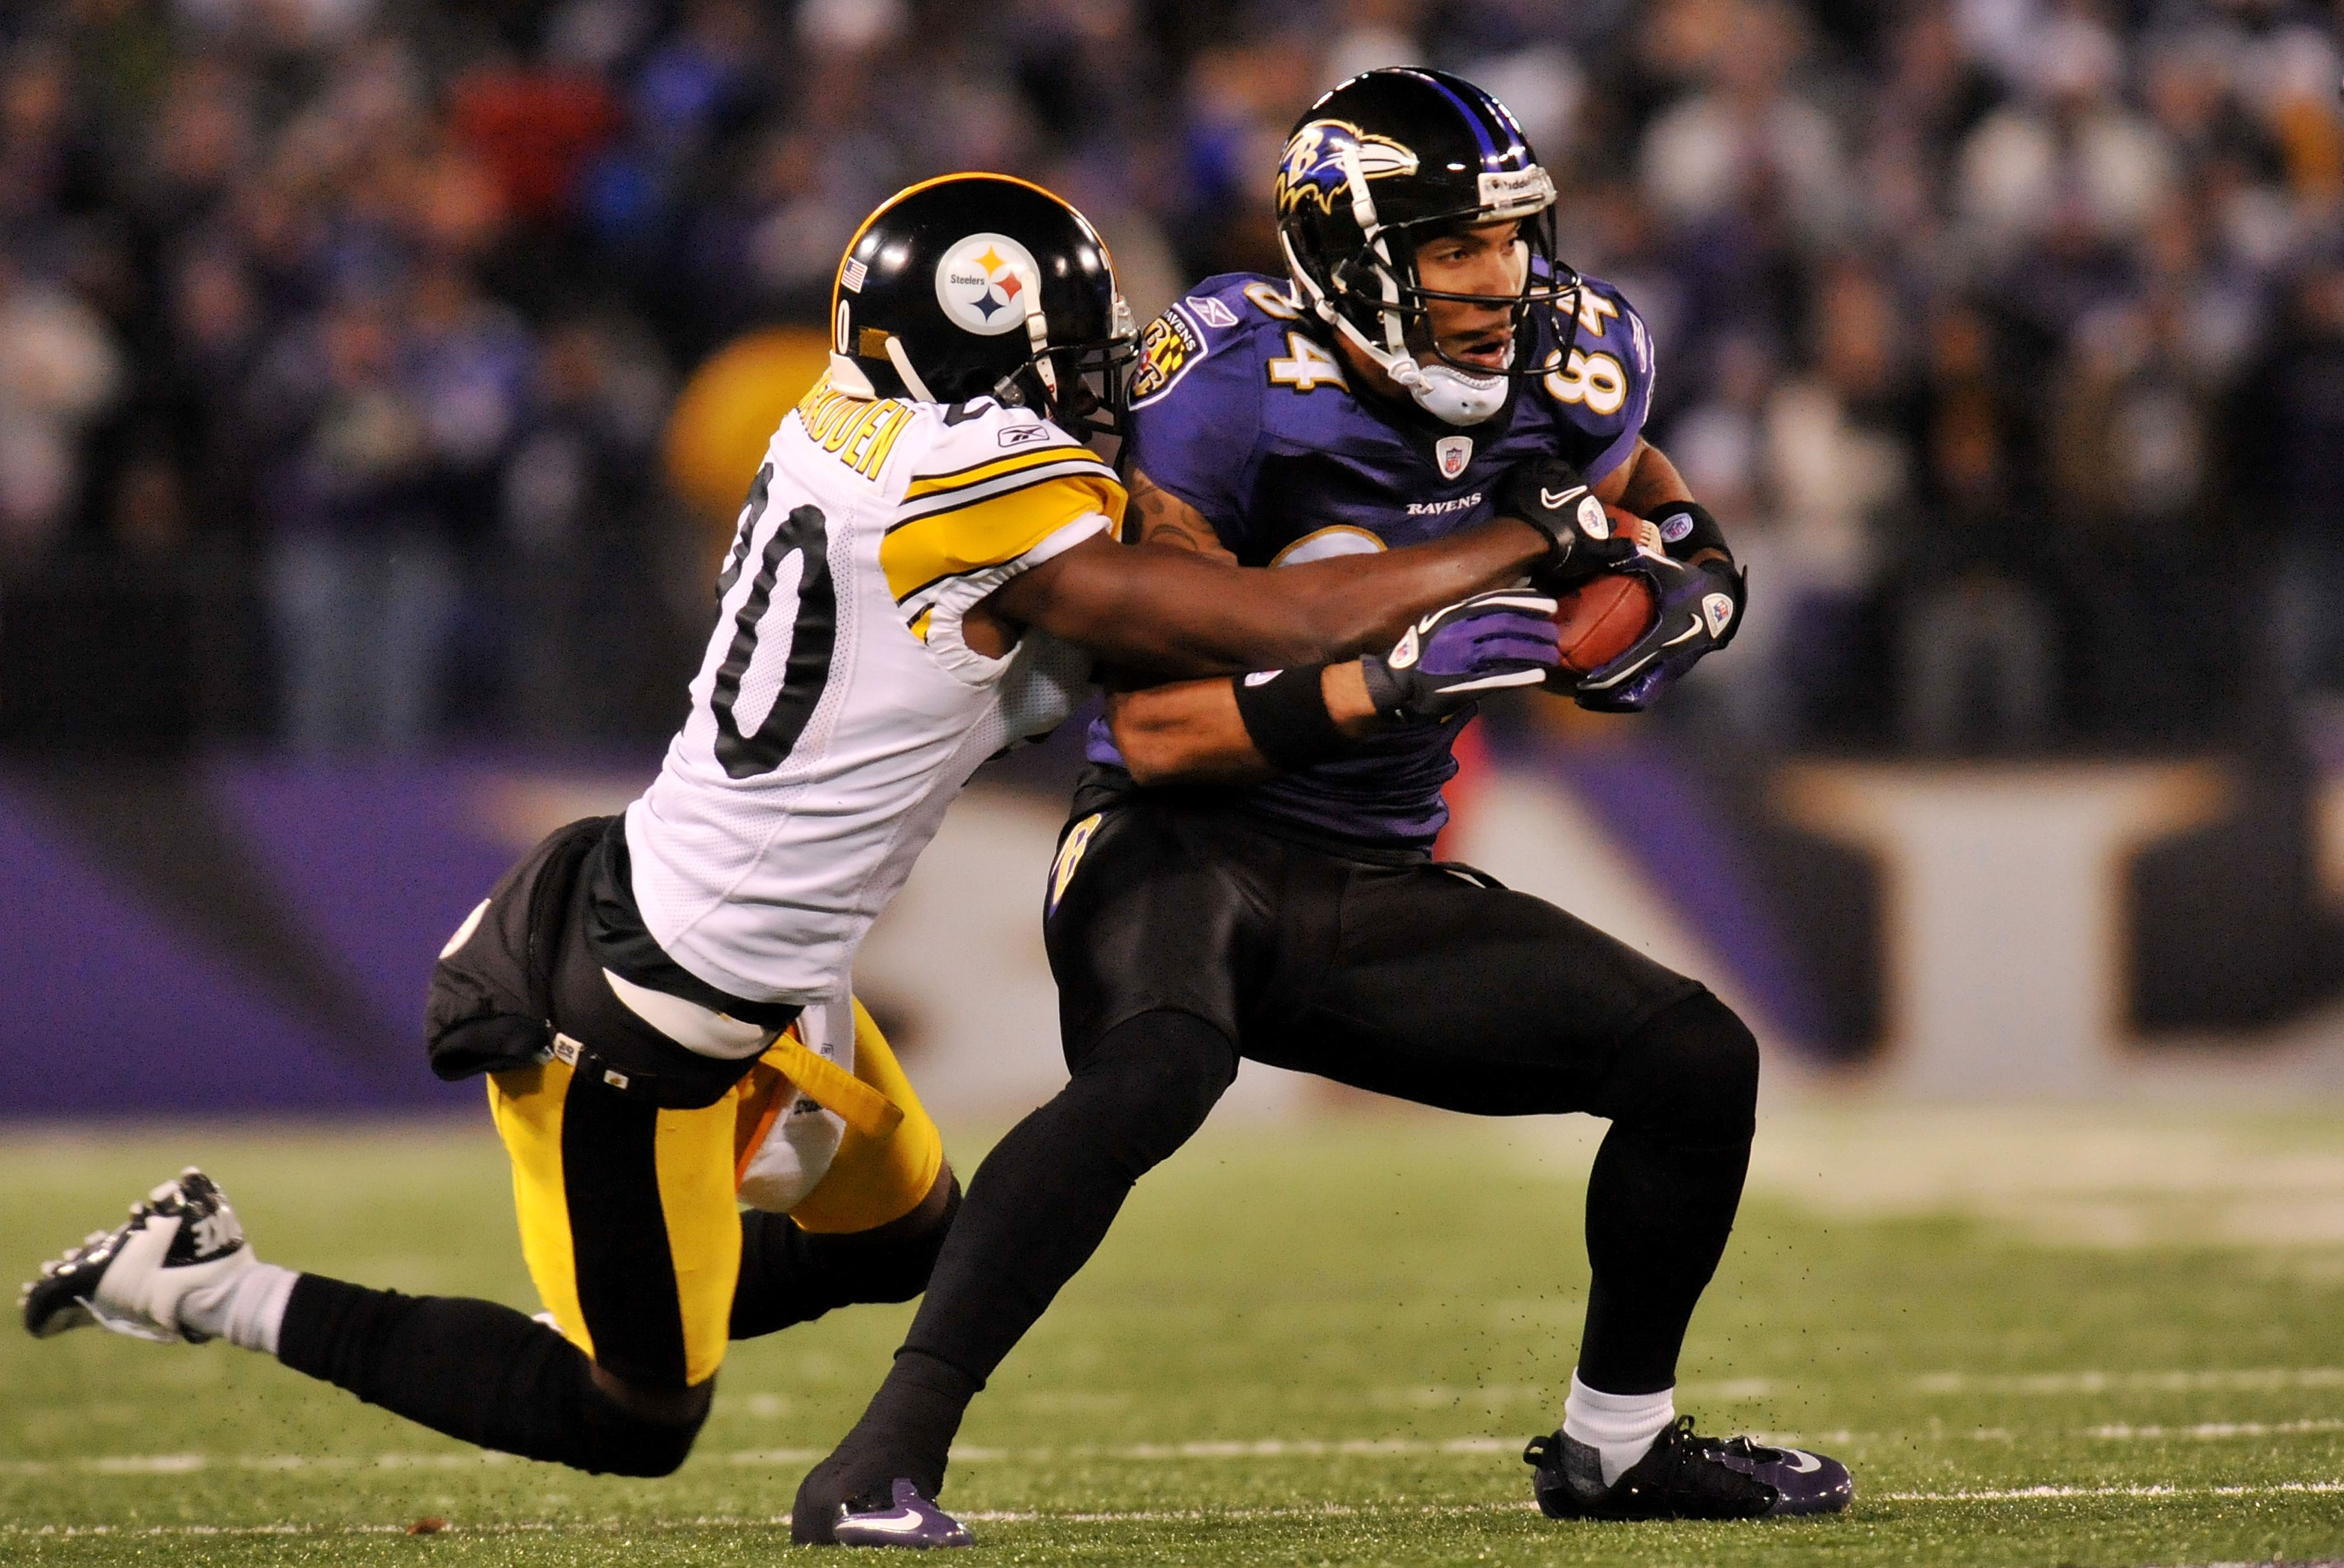 BALTIMORE, MD - DECEMBER 05:  T.J. Houshmandzadeh #84 of the Baltimore Ravens runs the ball against Bryant McFadden #20 of the Pittsburgh Steelers during the first half of the game at M&T Bank Stadium on December 5, 2010 in Baltimore, Maryland. Pittsburgh